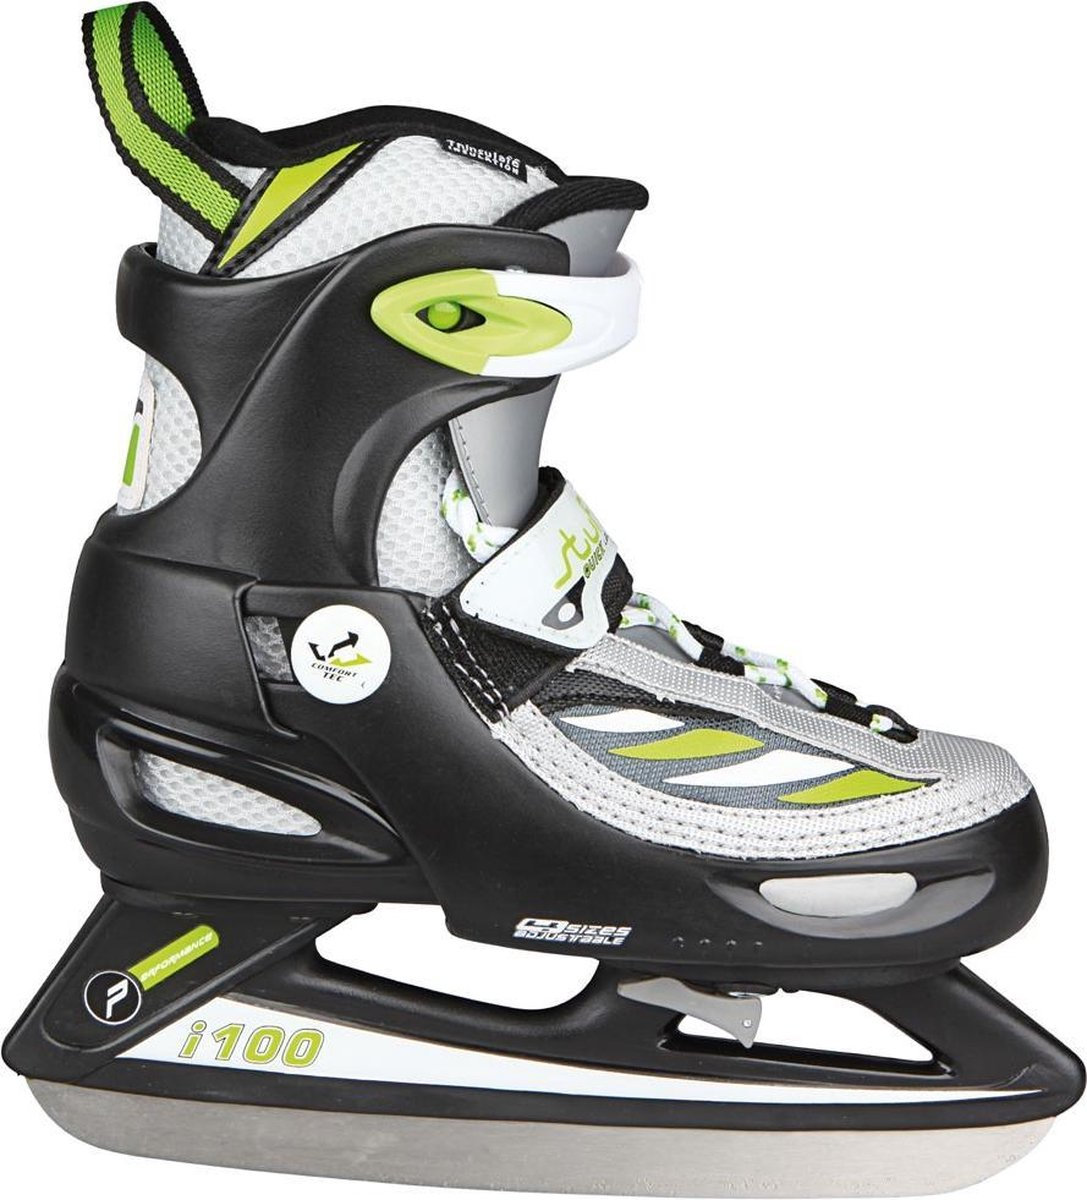 Stuf i100 Adjustable Ice Skates Kid's